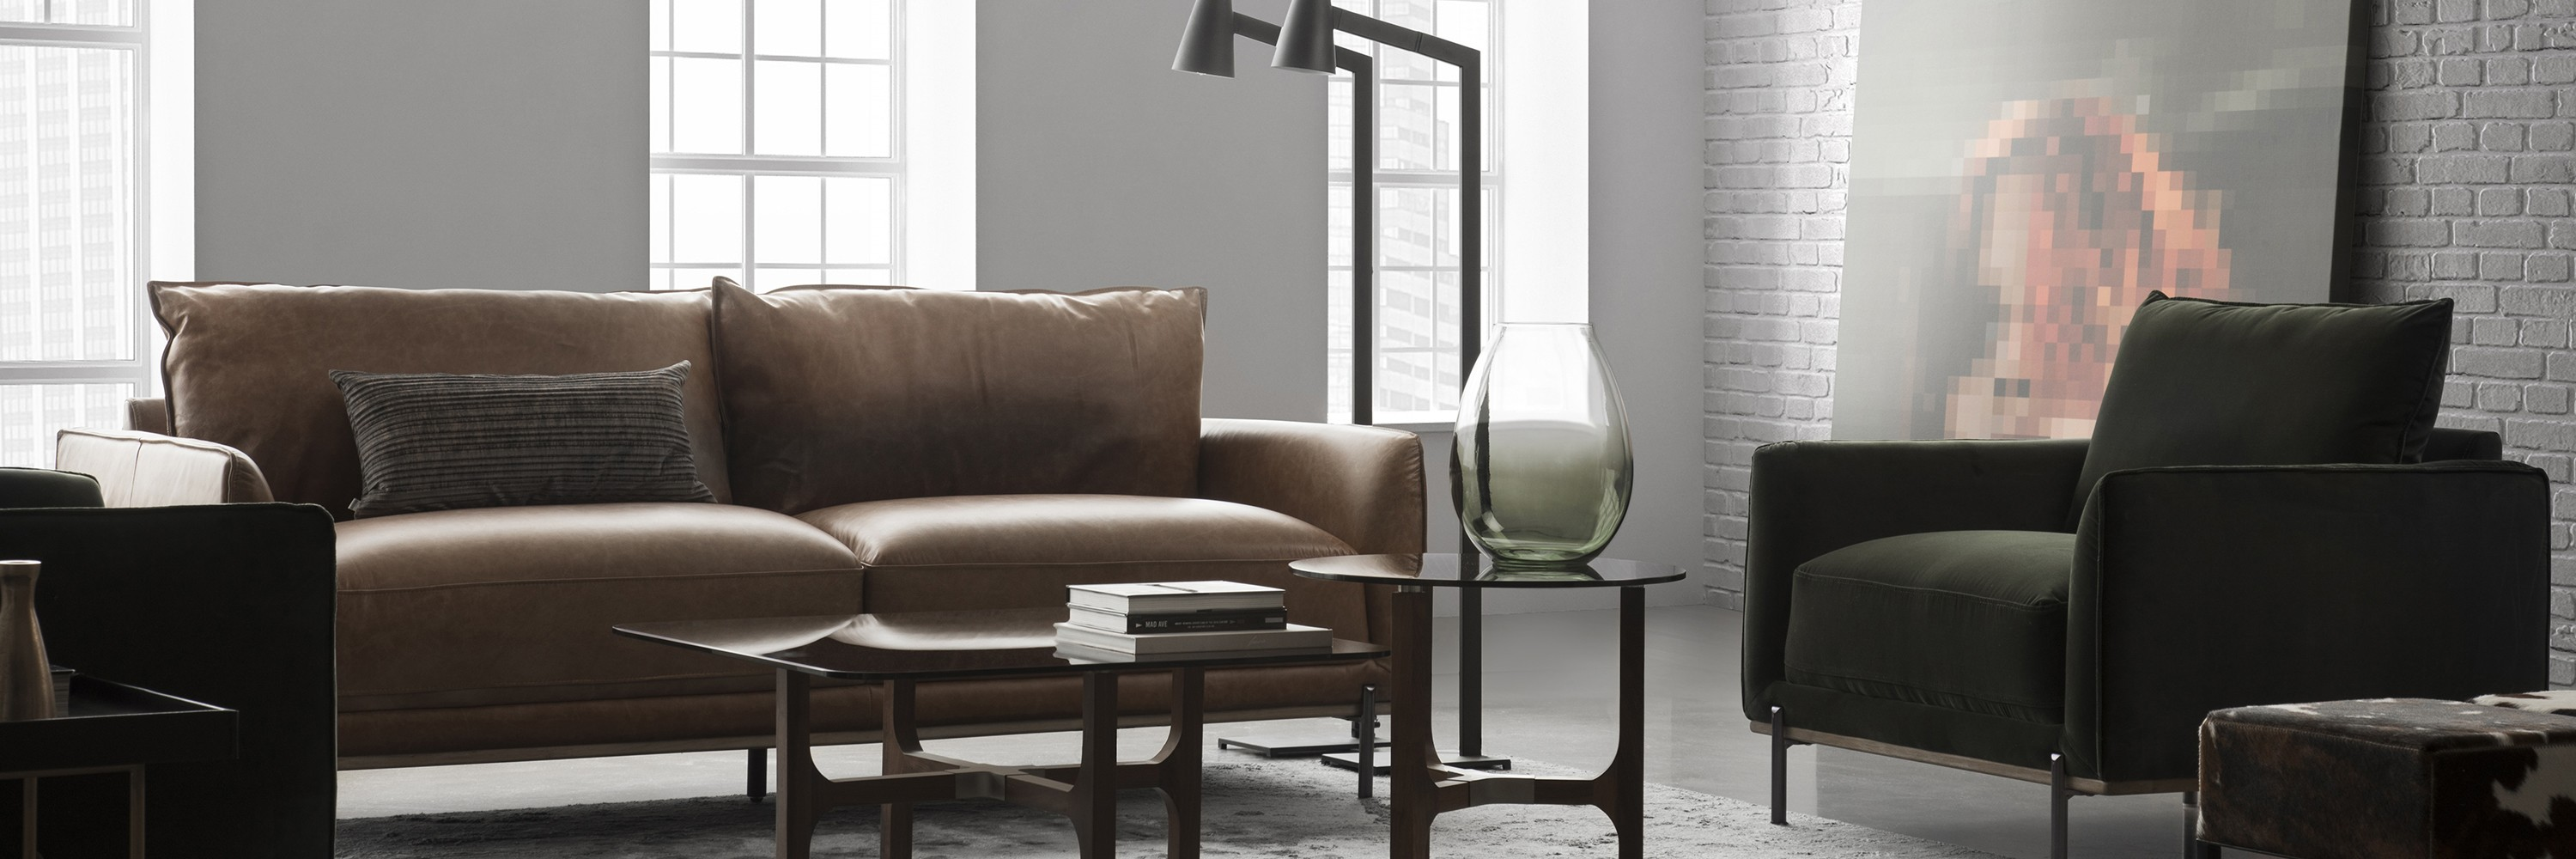 Catalogue Cuir Center Comfortable Sofas Living Room Maison Corbeil